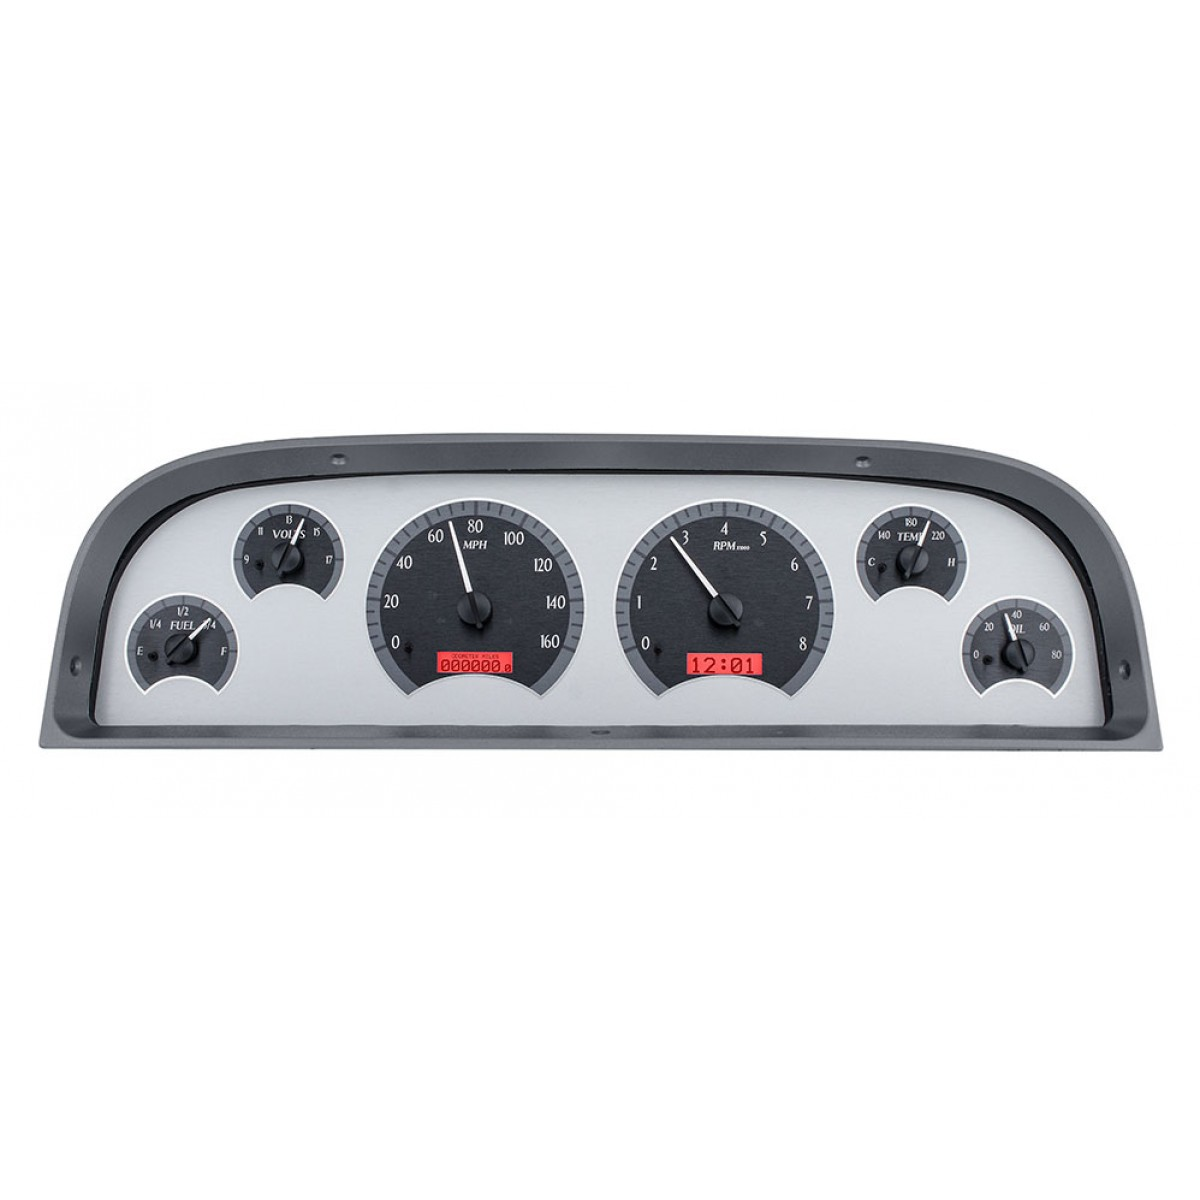 1960 63 chevy c10 pickup dakota digital gauges vhx system silver